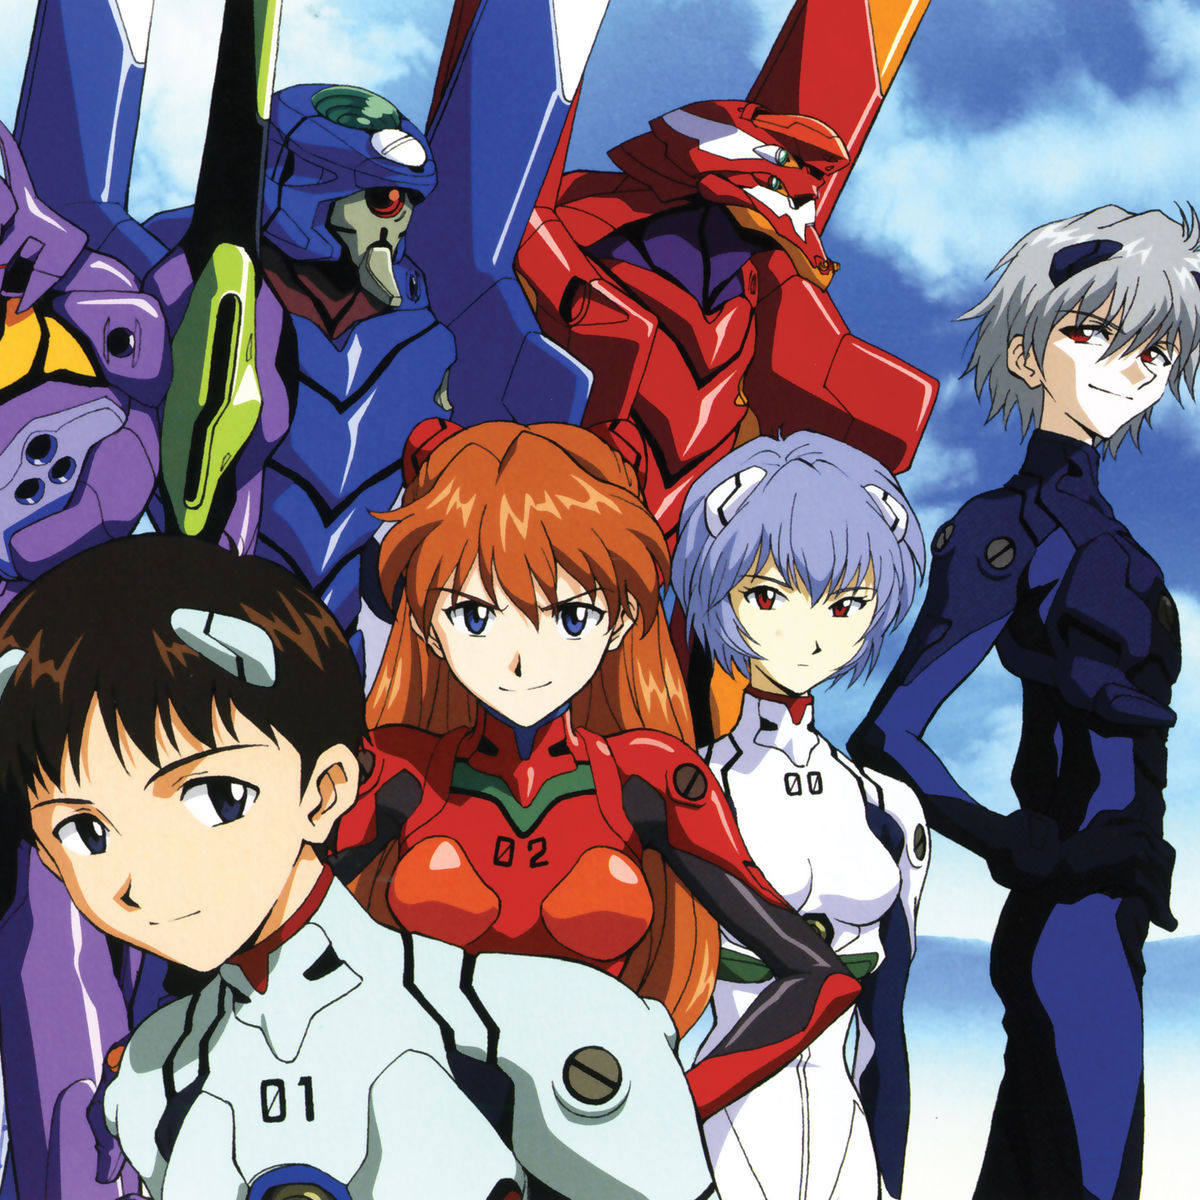 Neon genesis evangelion creator hideaki anno warns about the rapid decline of japanese animation